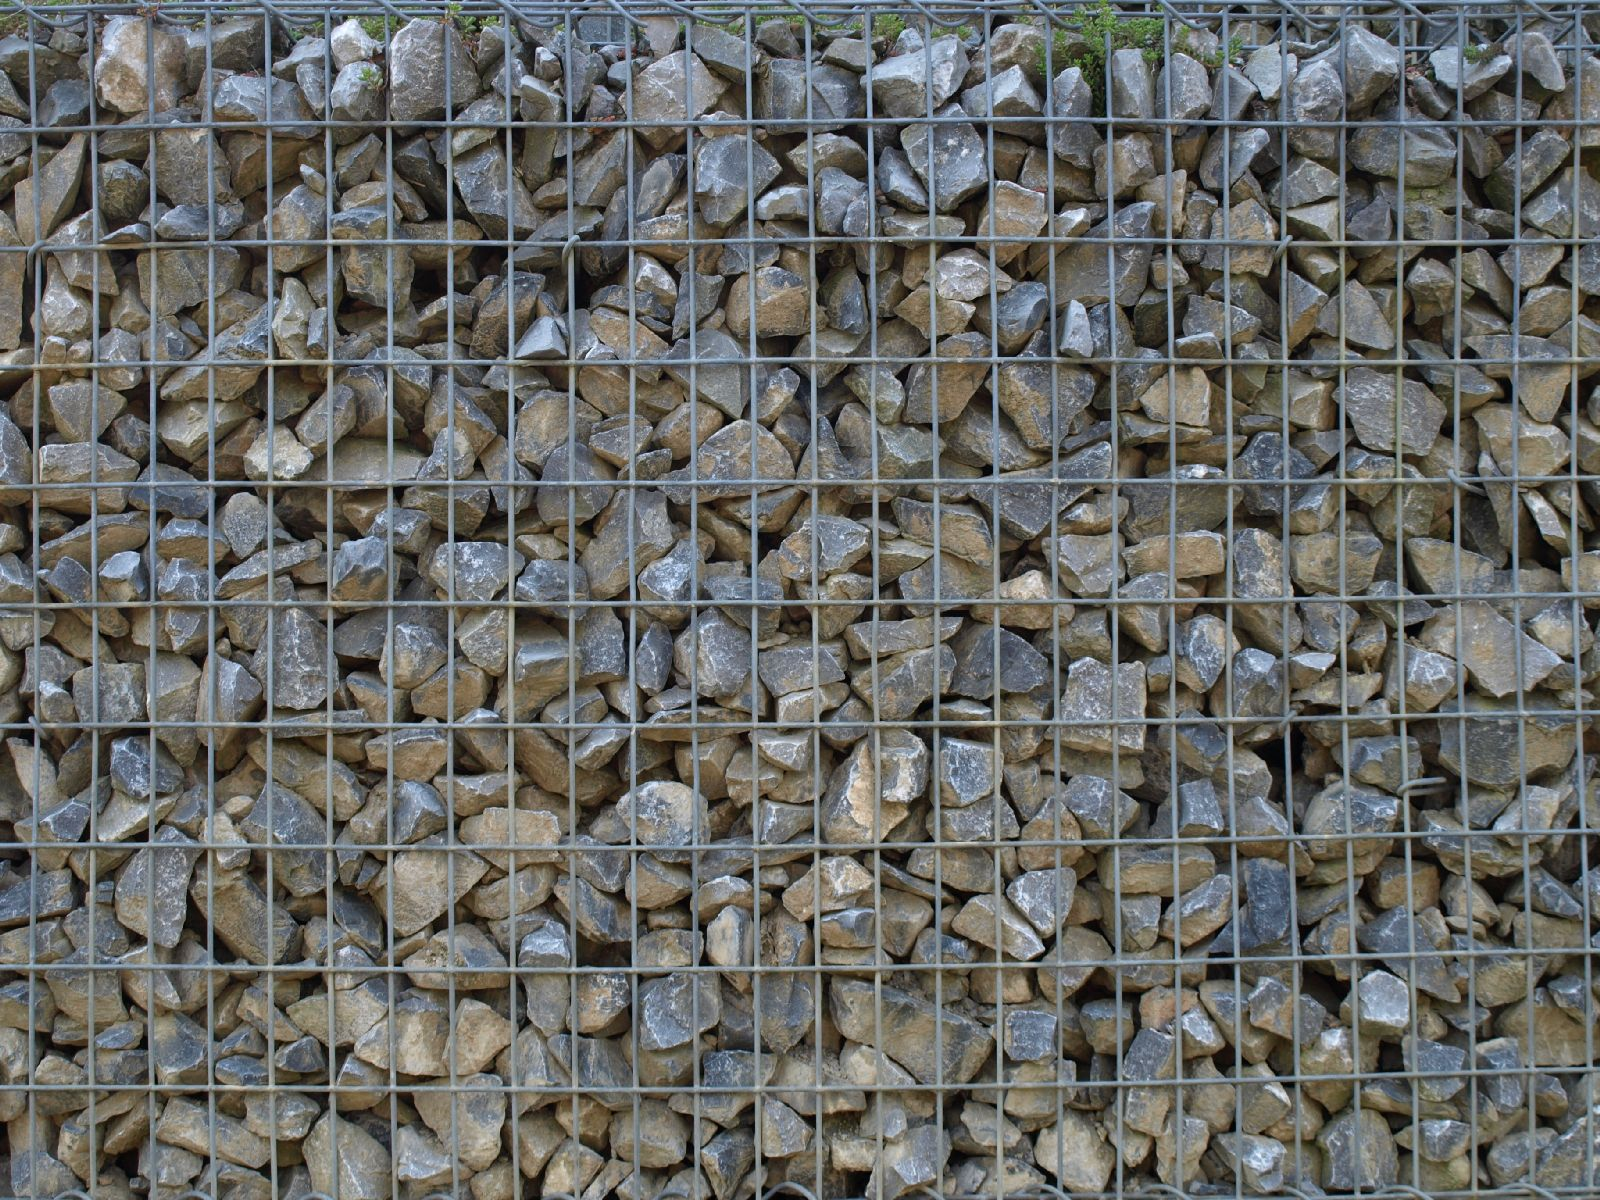 Stone_Texture_A_P4221660